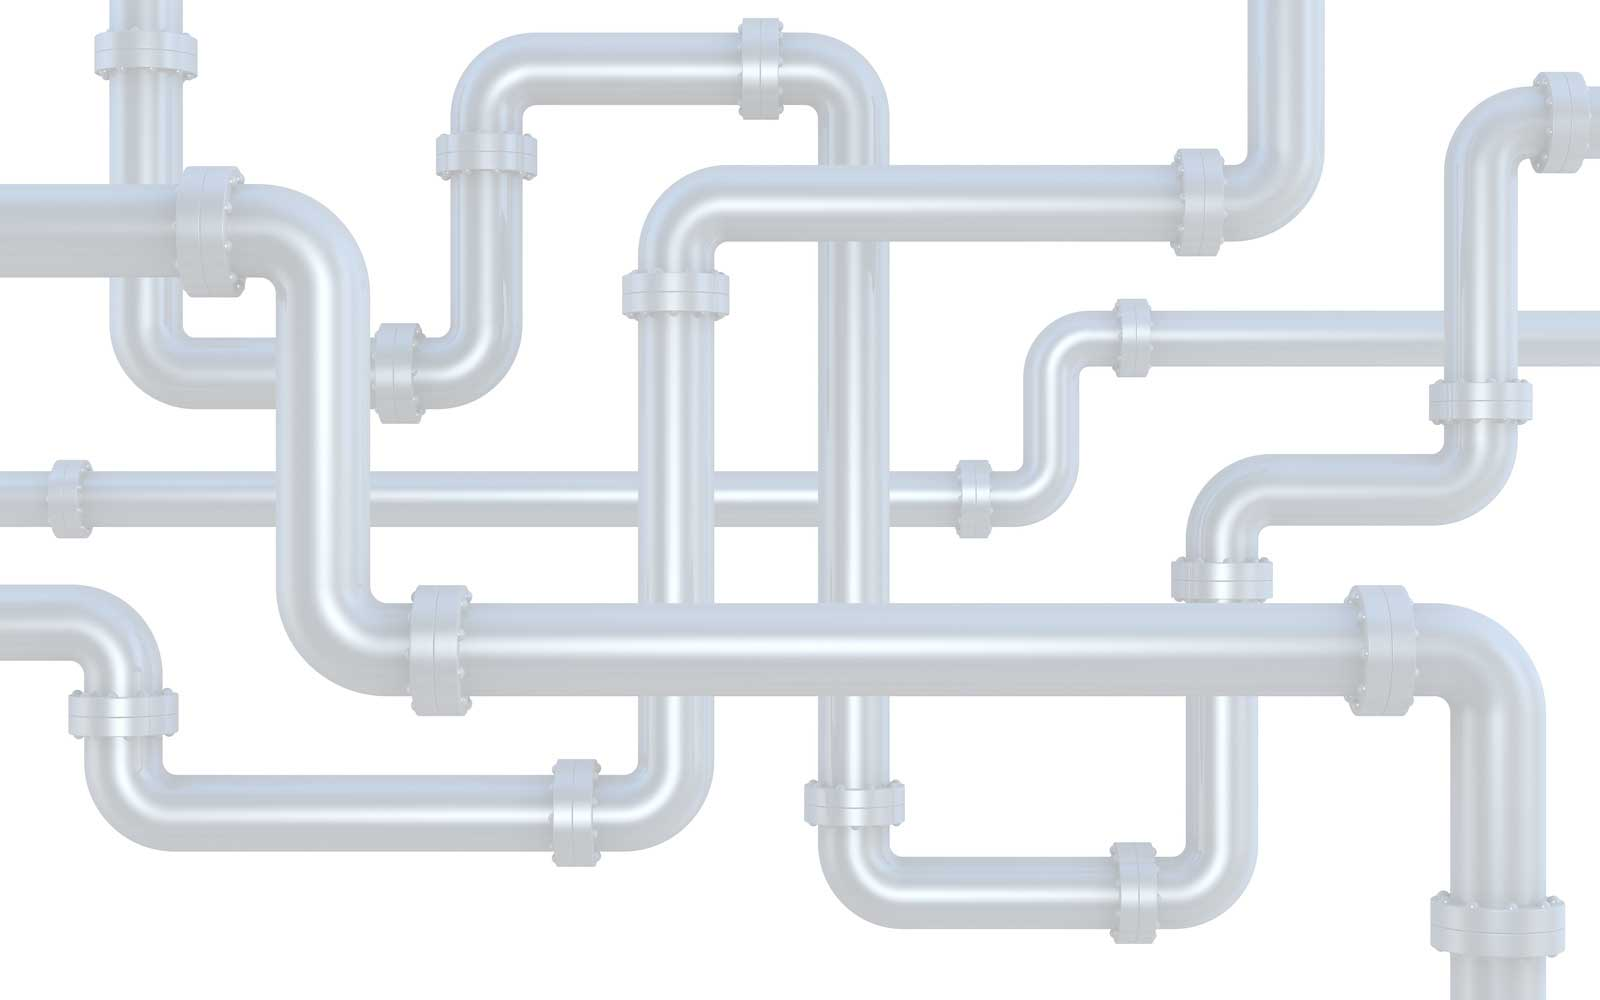 Free Plumber Pipes Cliparts, Download Free Clip Art, Free.